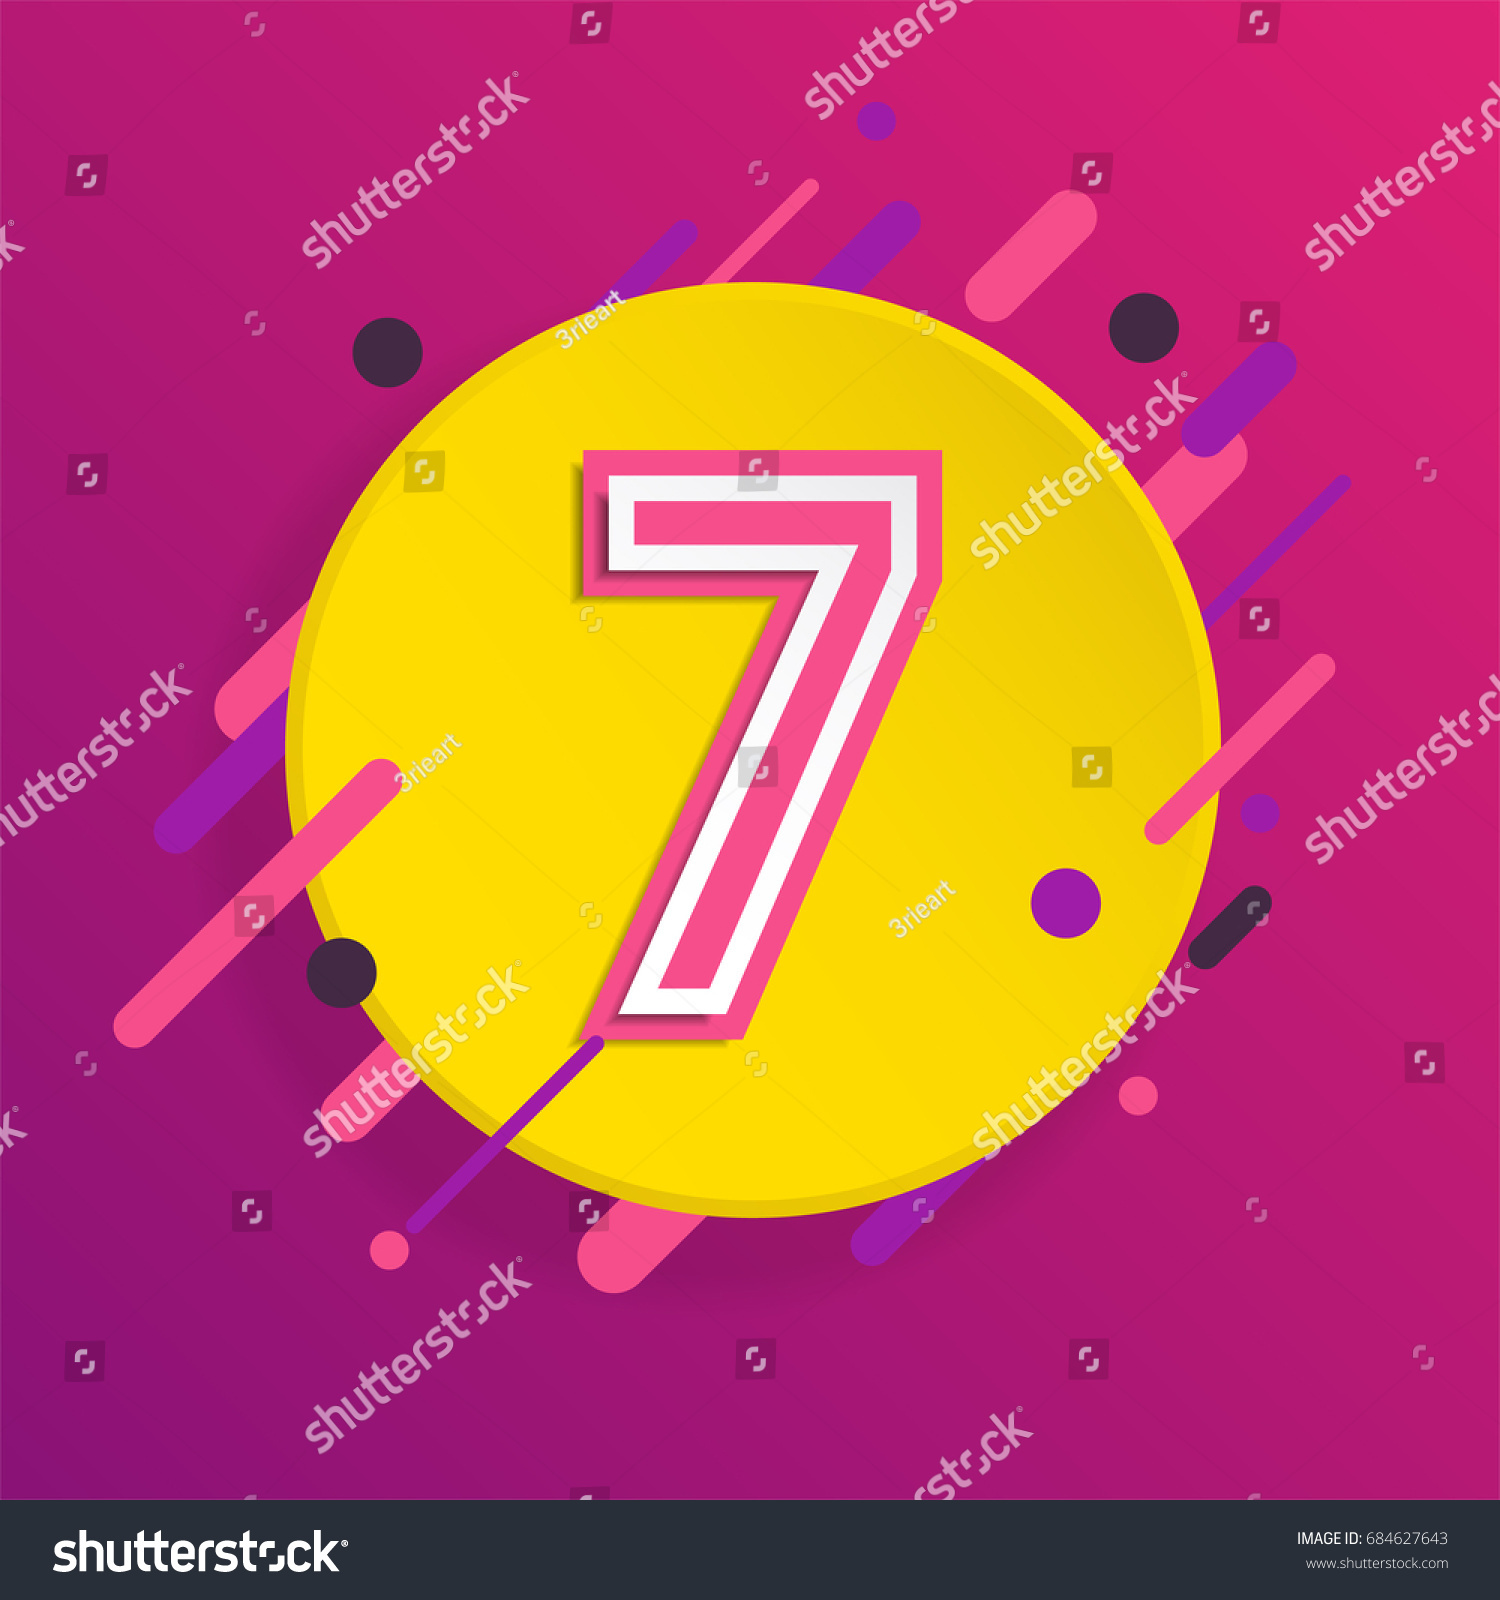 Stylized Abstract Number 7 Abstract Number Stock Vector 684627643 ...